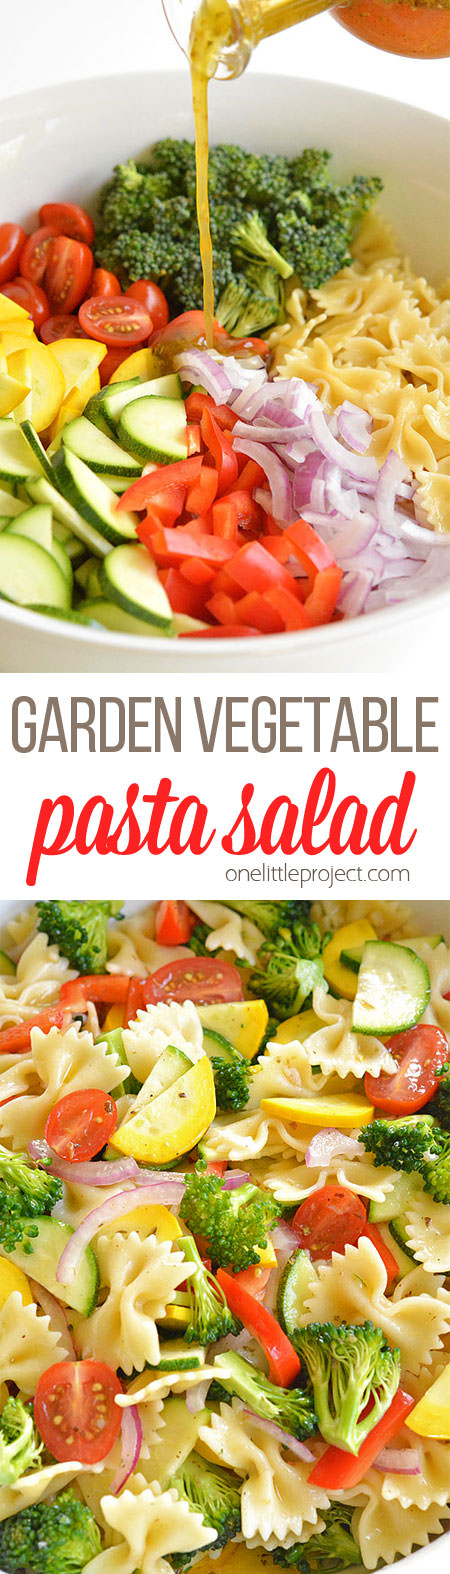 This garden vegetable pasta salad is SO GOOD. It's loaded with fresh, summer ingredients in almost all the colours of the rainbow so you know it's healthy.